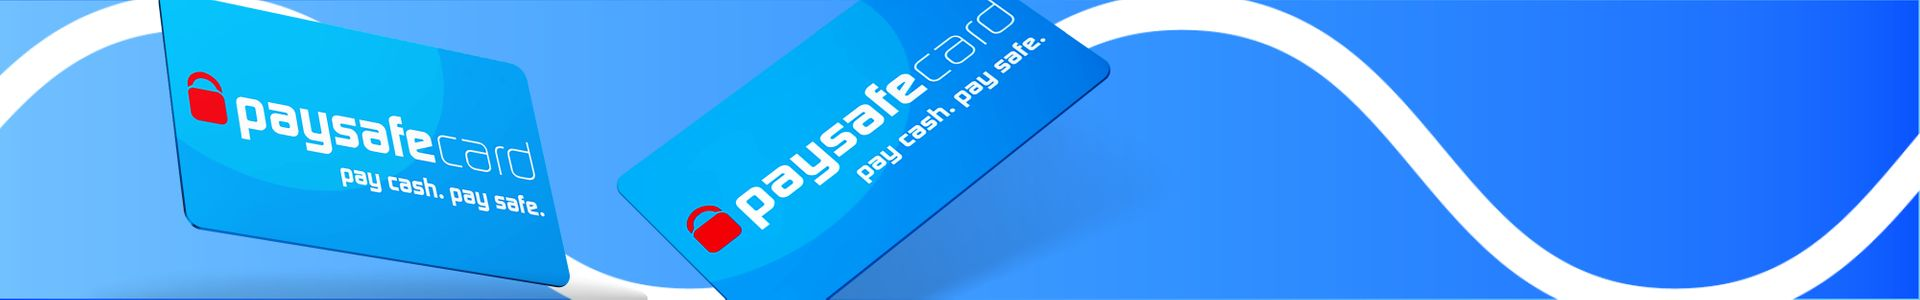 Battle Net Paysafecard